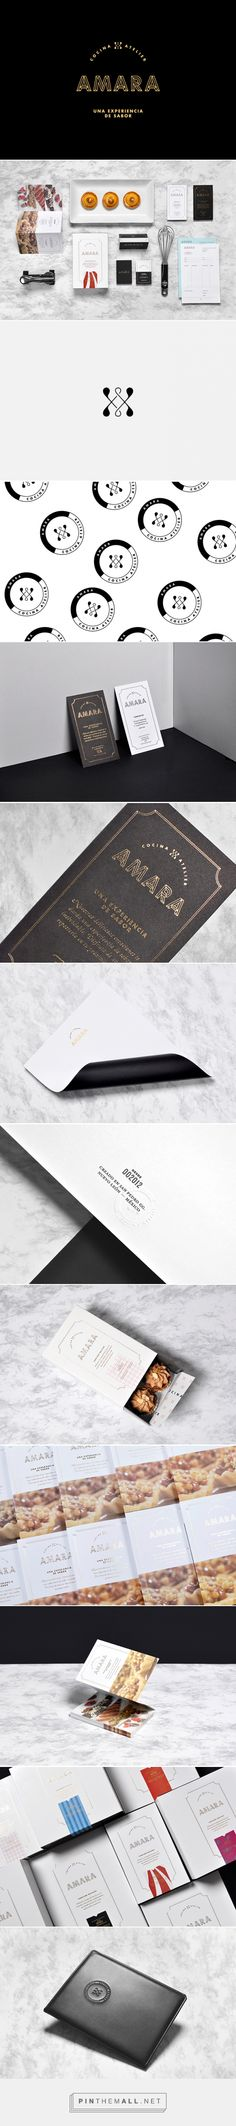 Amara – Visual Journal... - a grouped images picture - Pin Them All